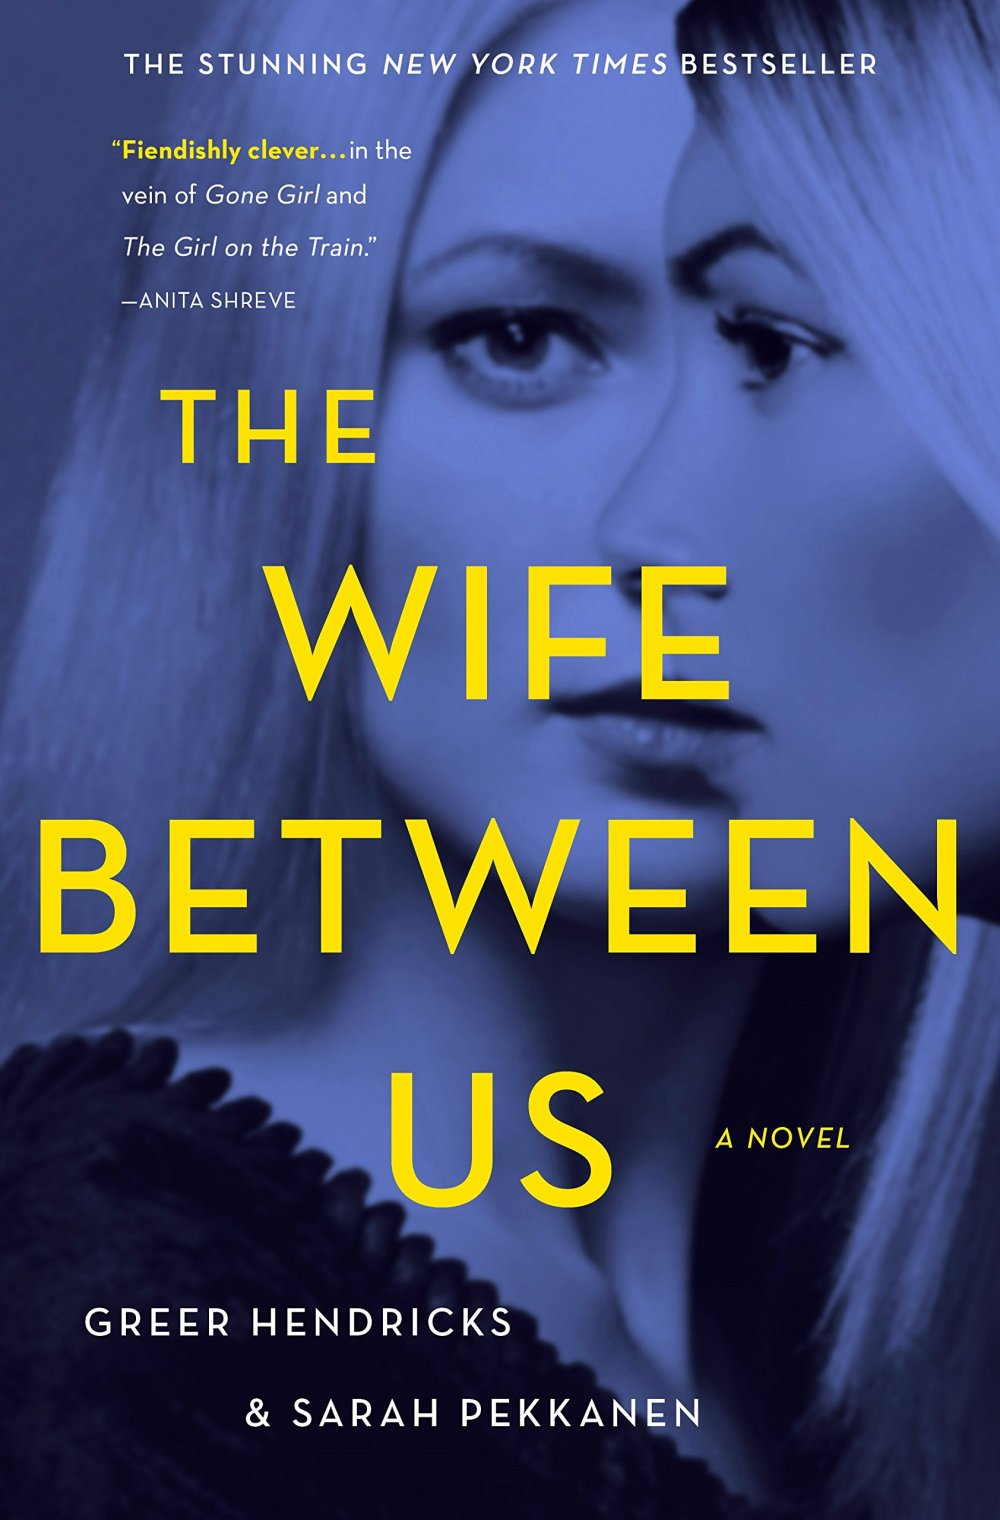 6. The Wife Between Us by Greer Hendricks and Sarah Pekkanen (2018)